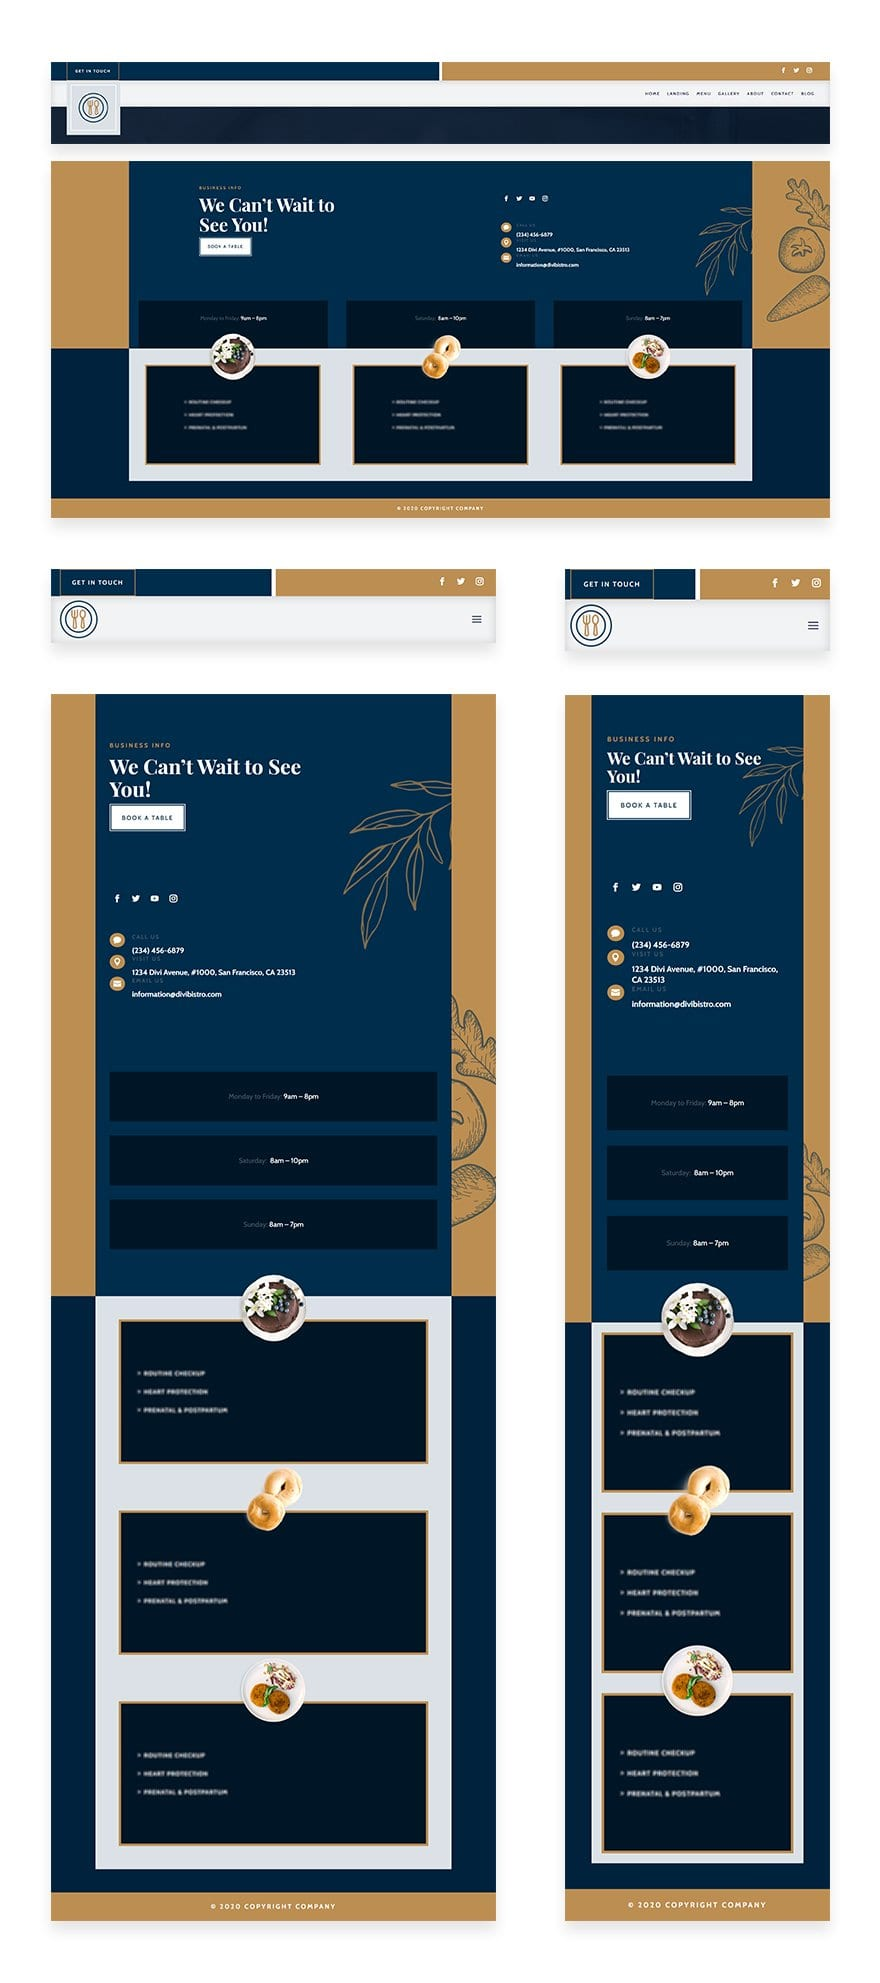 get-a-free-header-footer-for-divis-bistro-layout-pack Get a FREE Header & Footer for Divi's Bistro Layout Pack